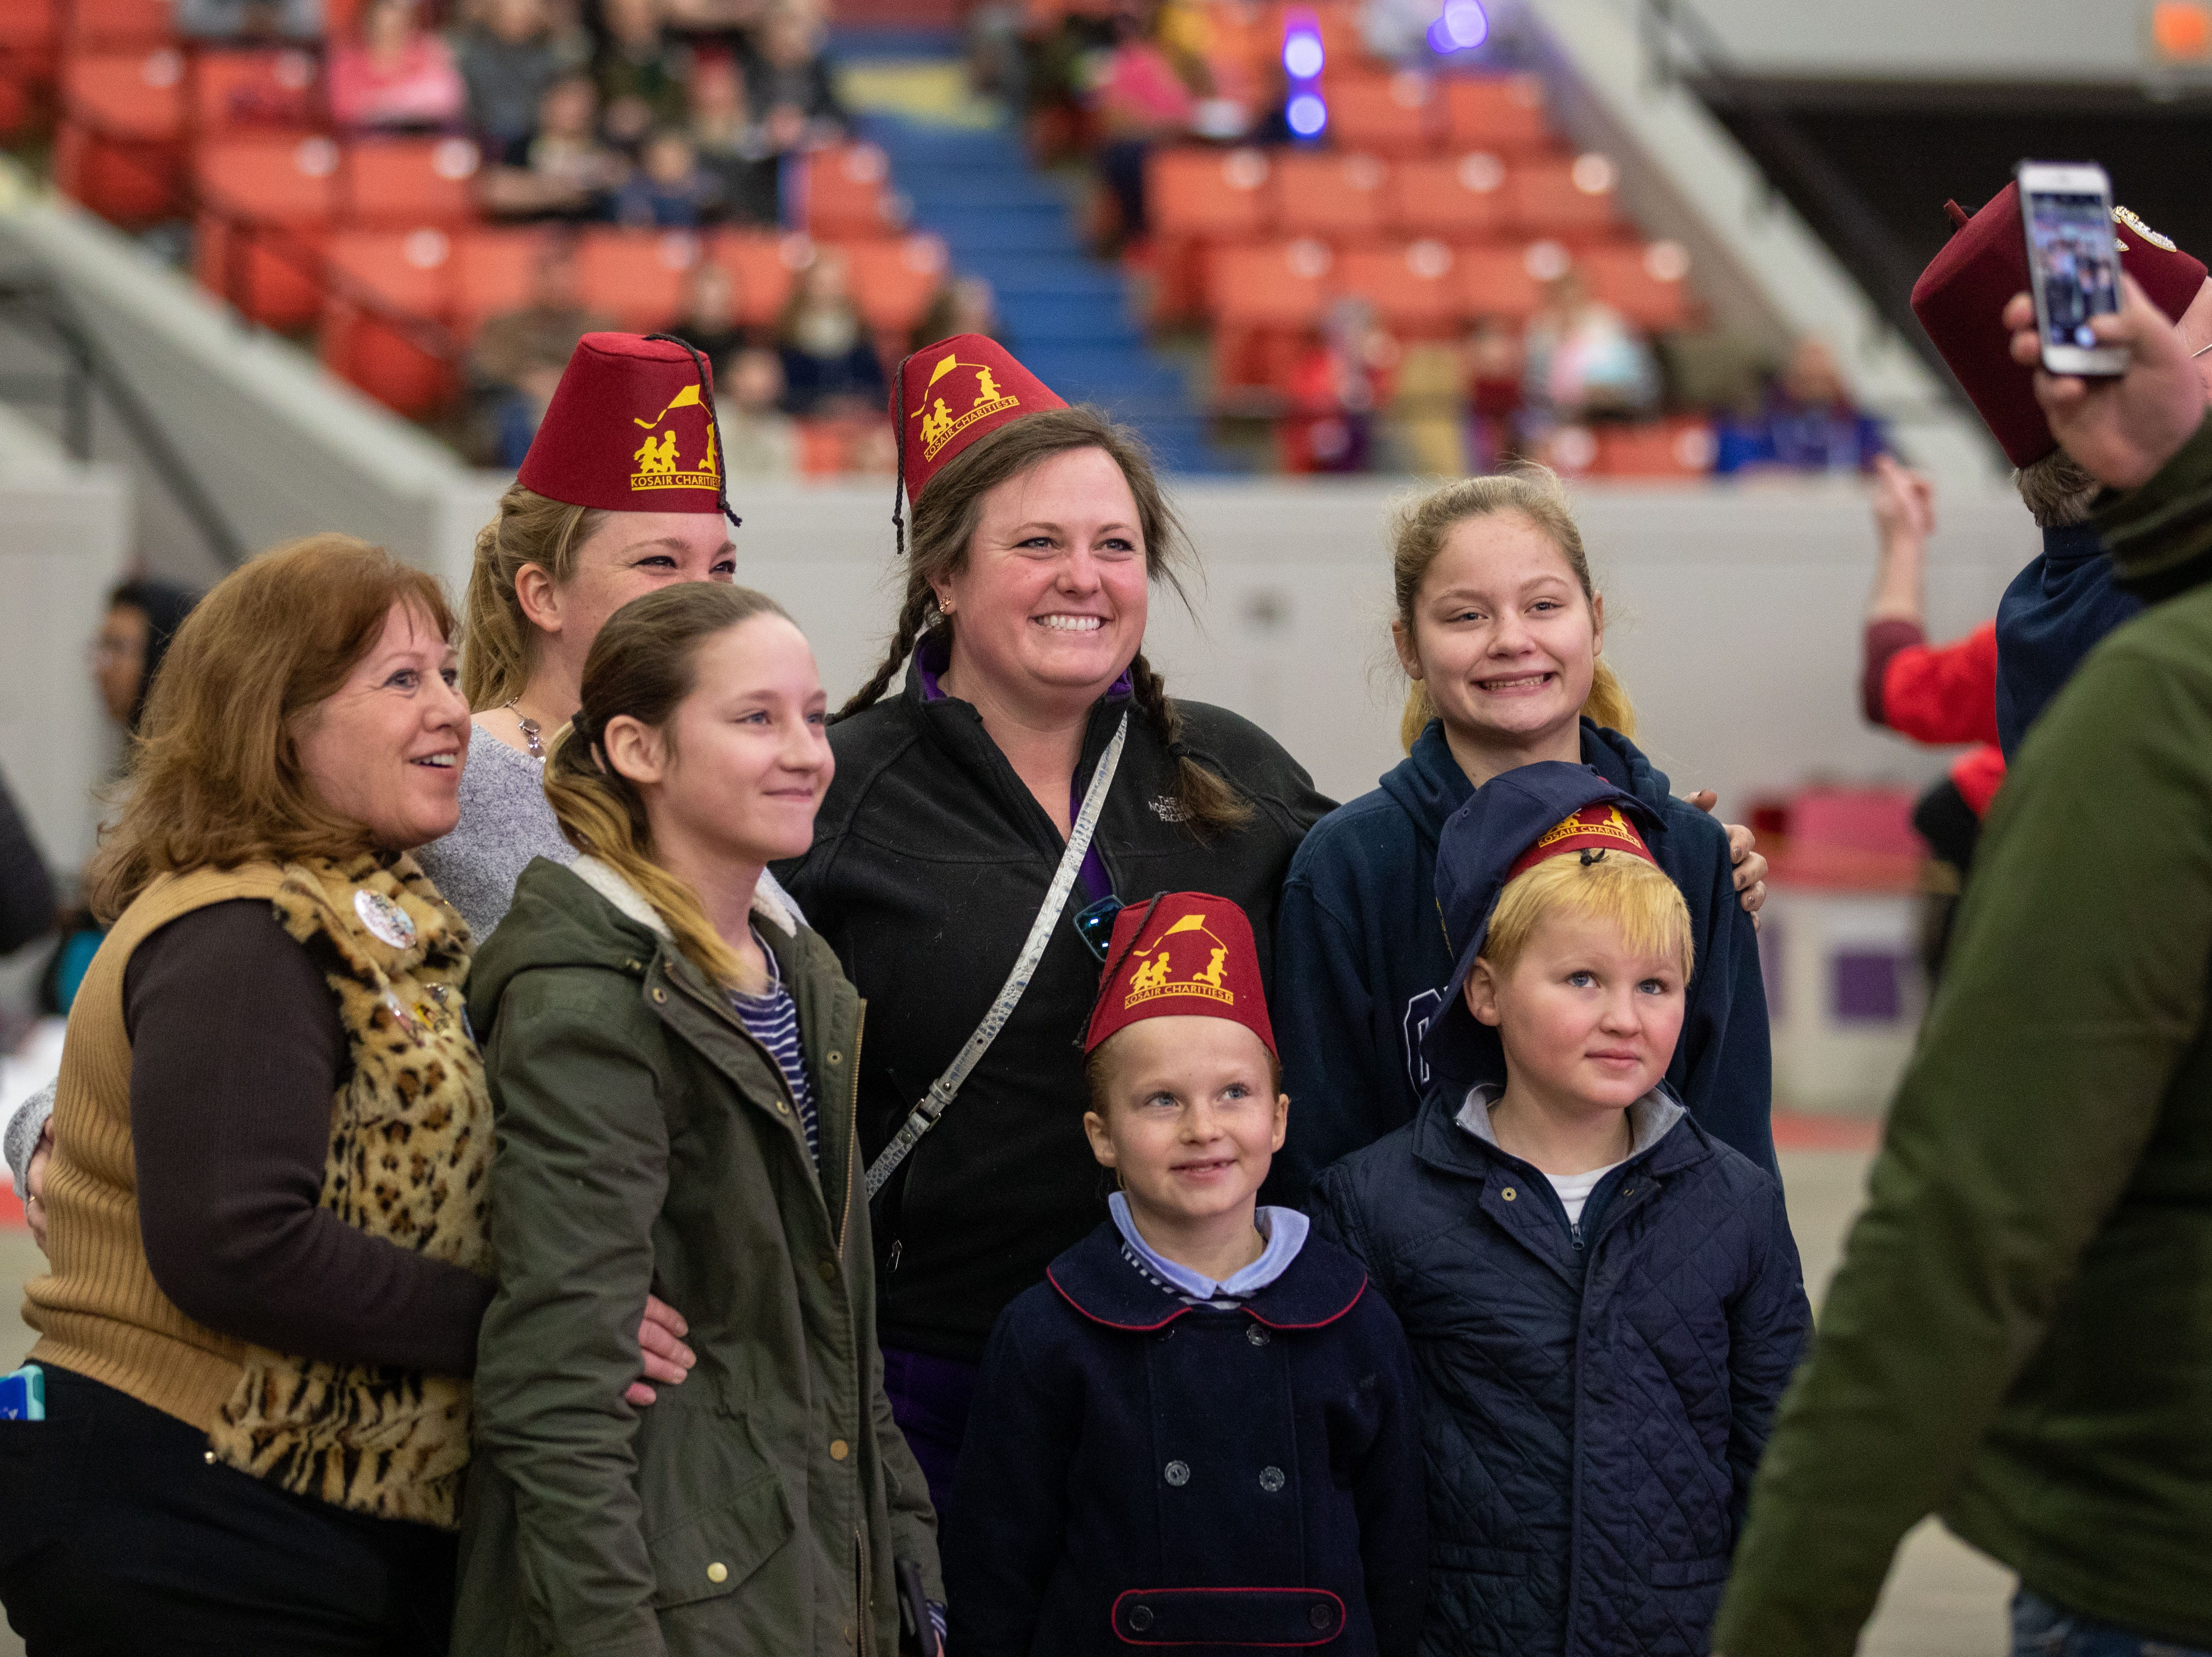 Wearing grins and Kosair Shriner hats, a group poses for a photo in Broadbent Arena before the circus begins, Saturday, Feb. 9, 2019 in Louisville Ky.